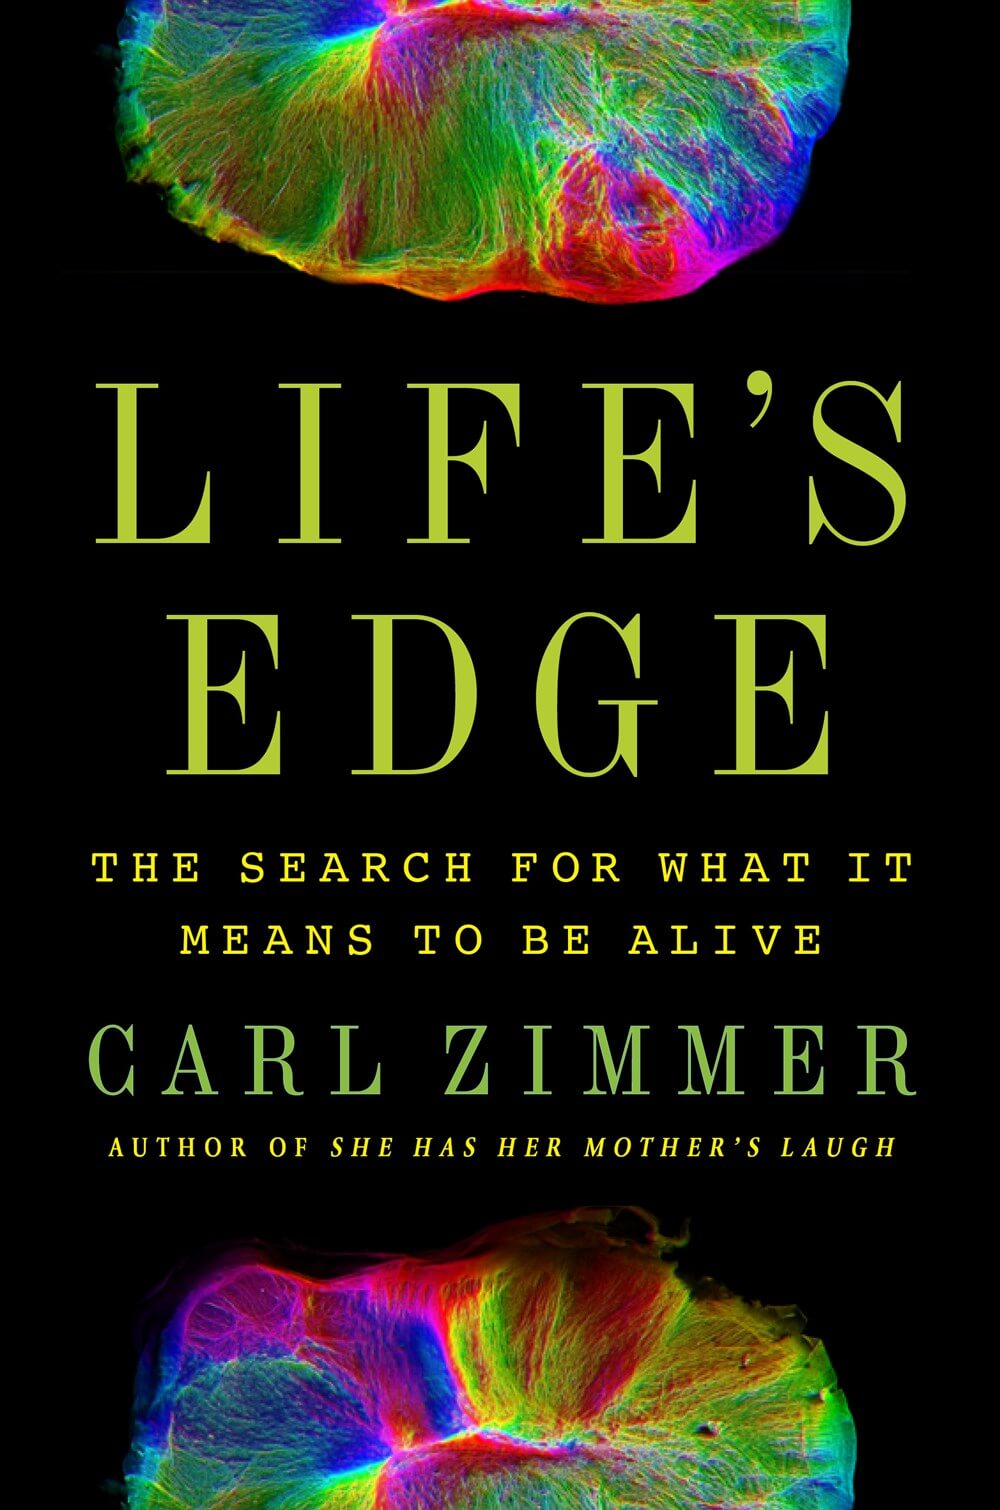 Life's Edge: The Search for What It Means to Be Alive